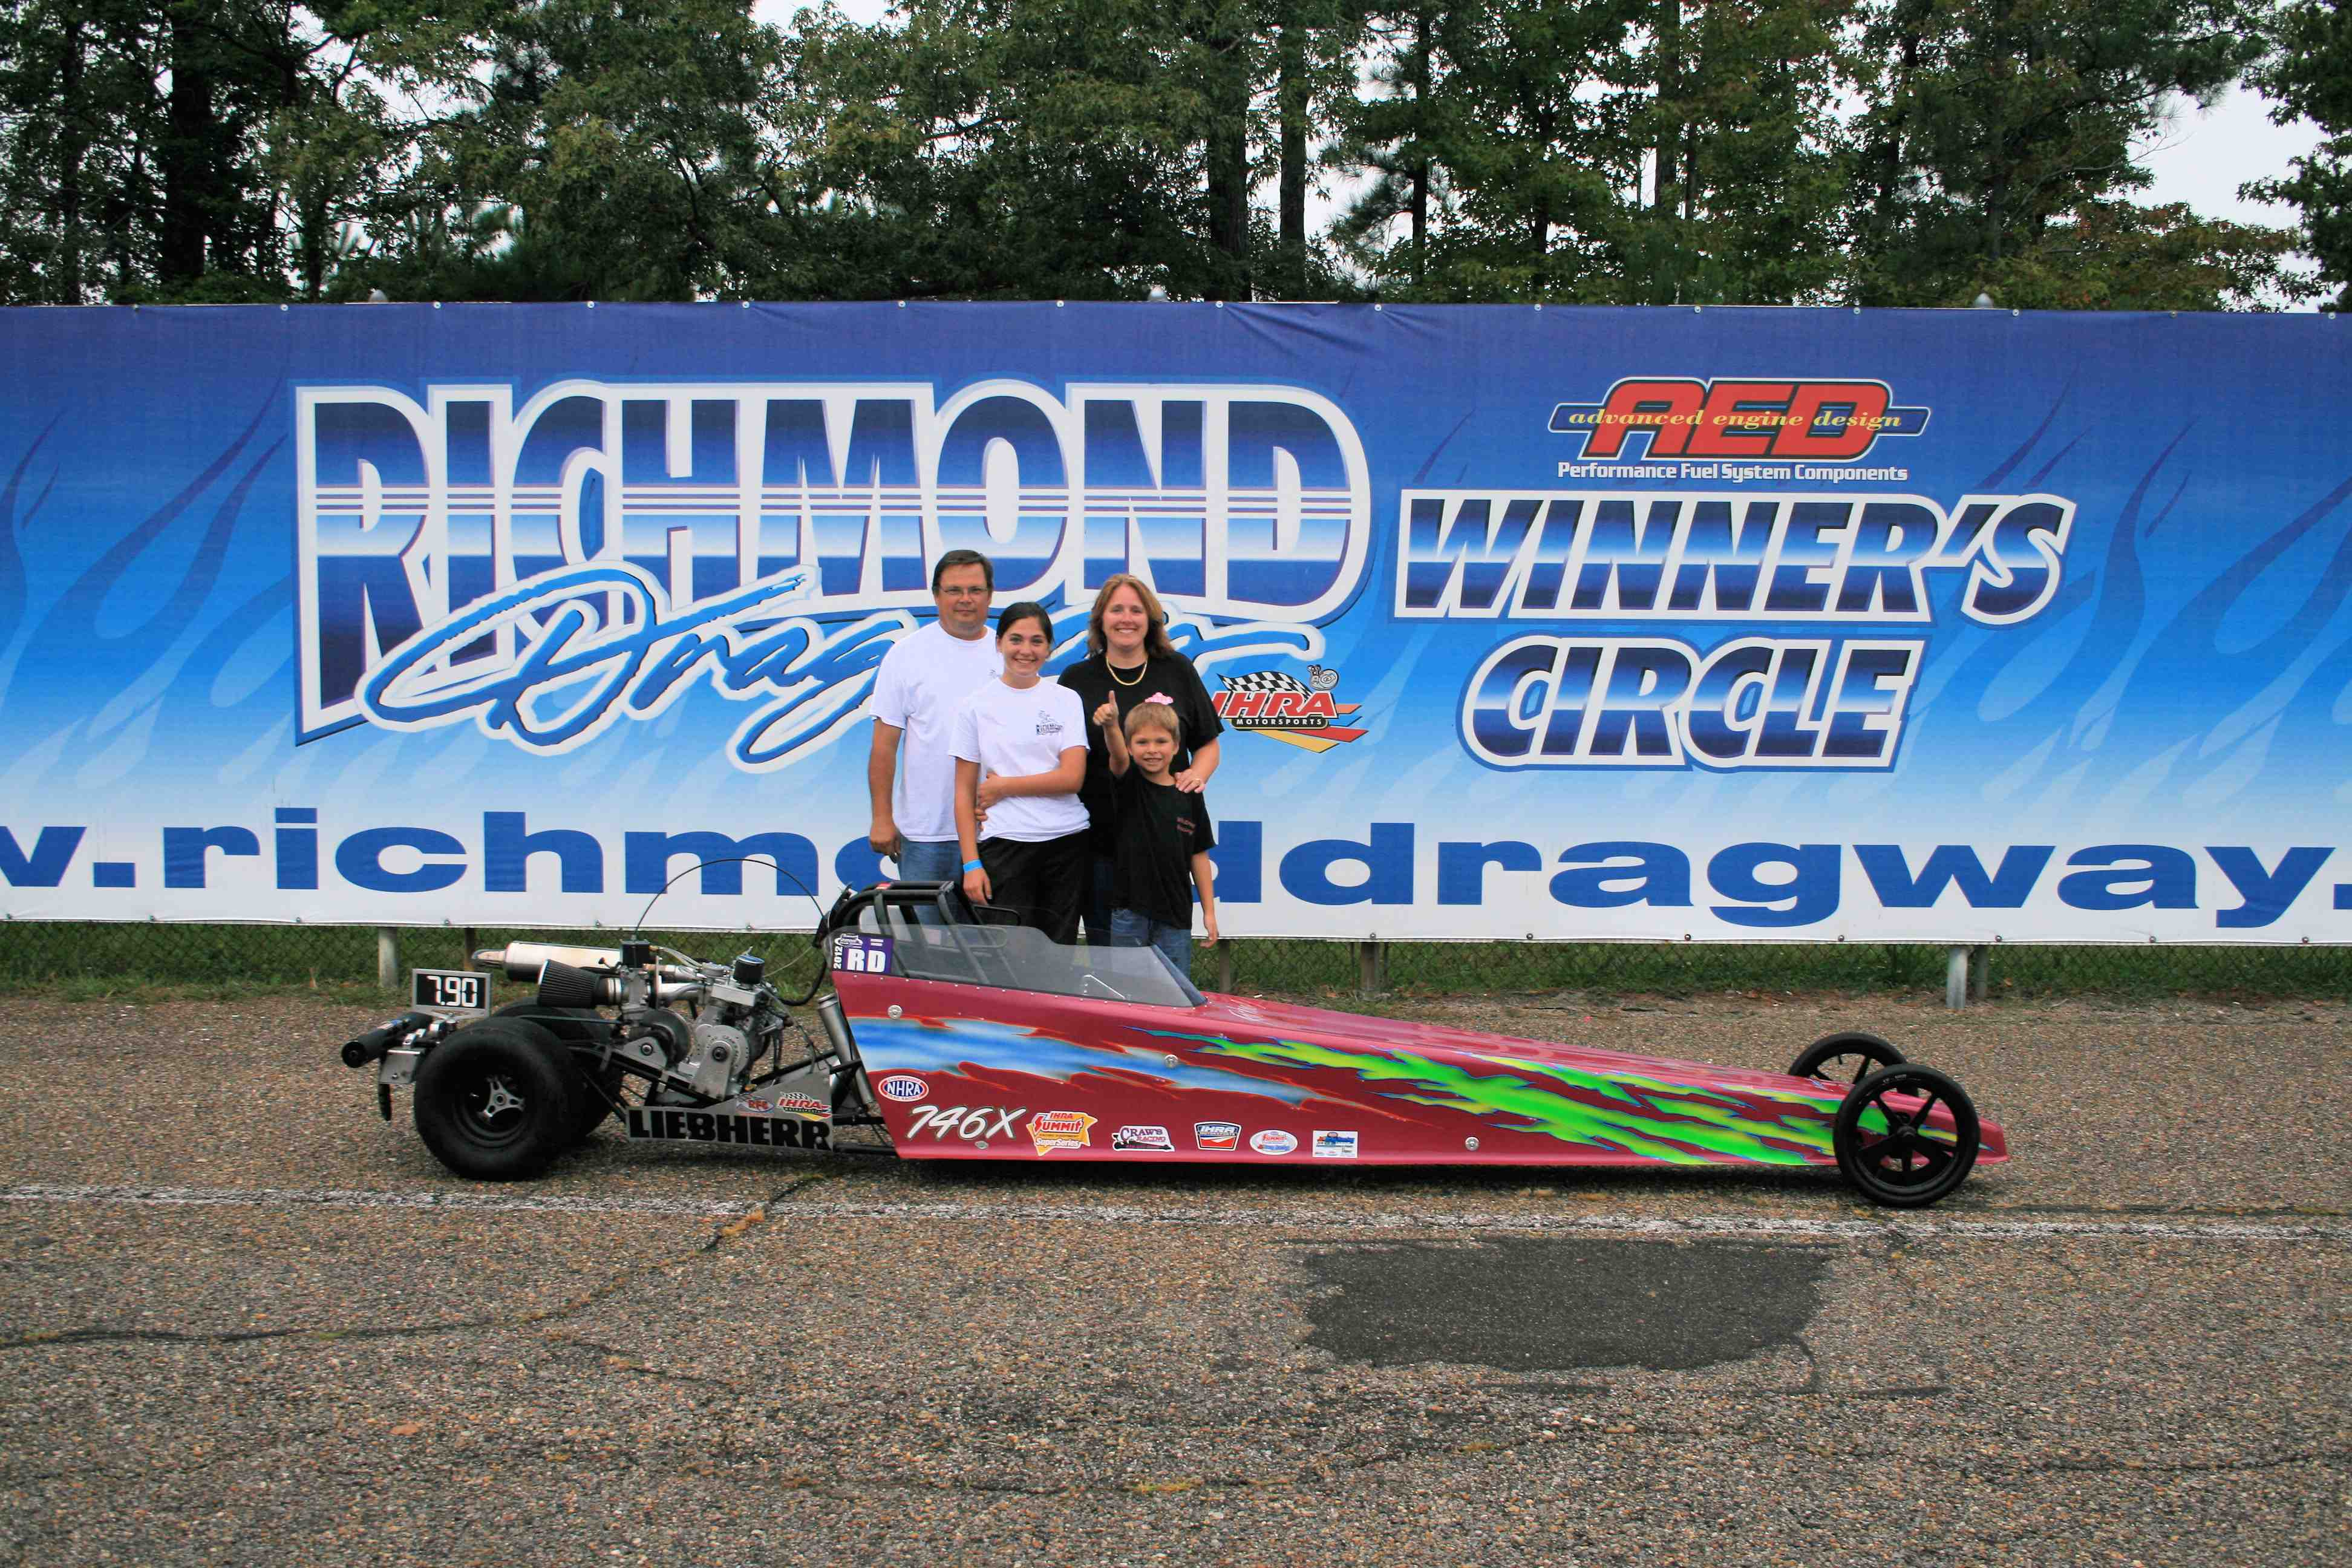 2013 aed performance track champions | richmond dragway